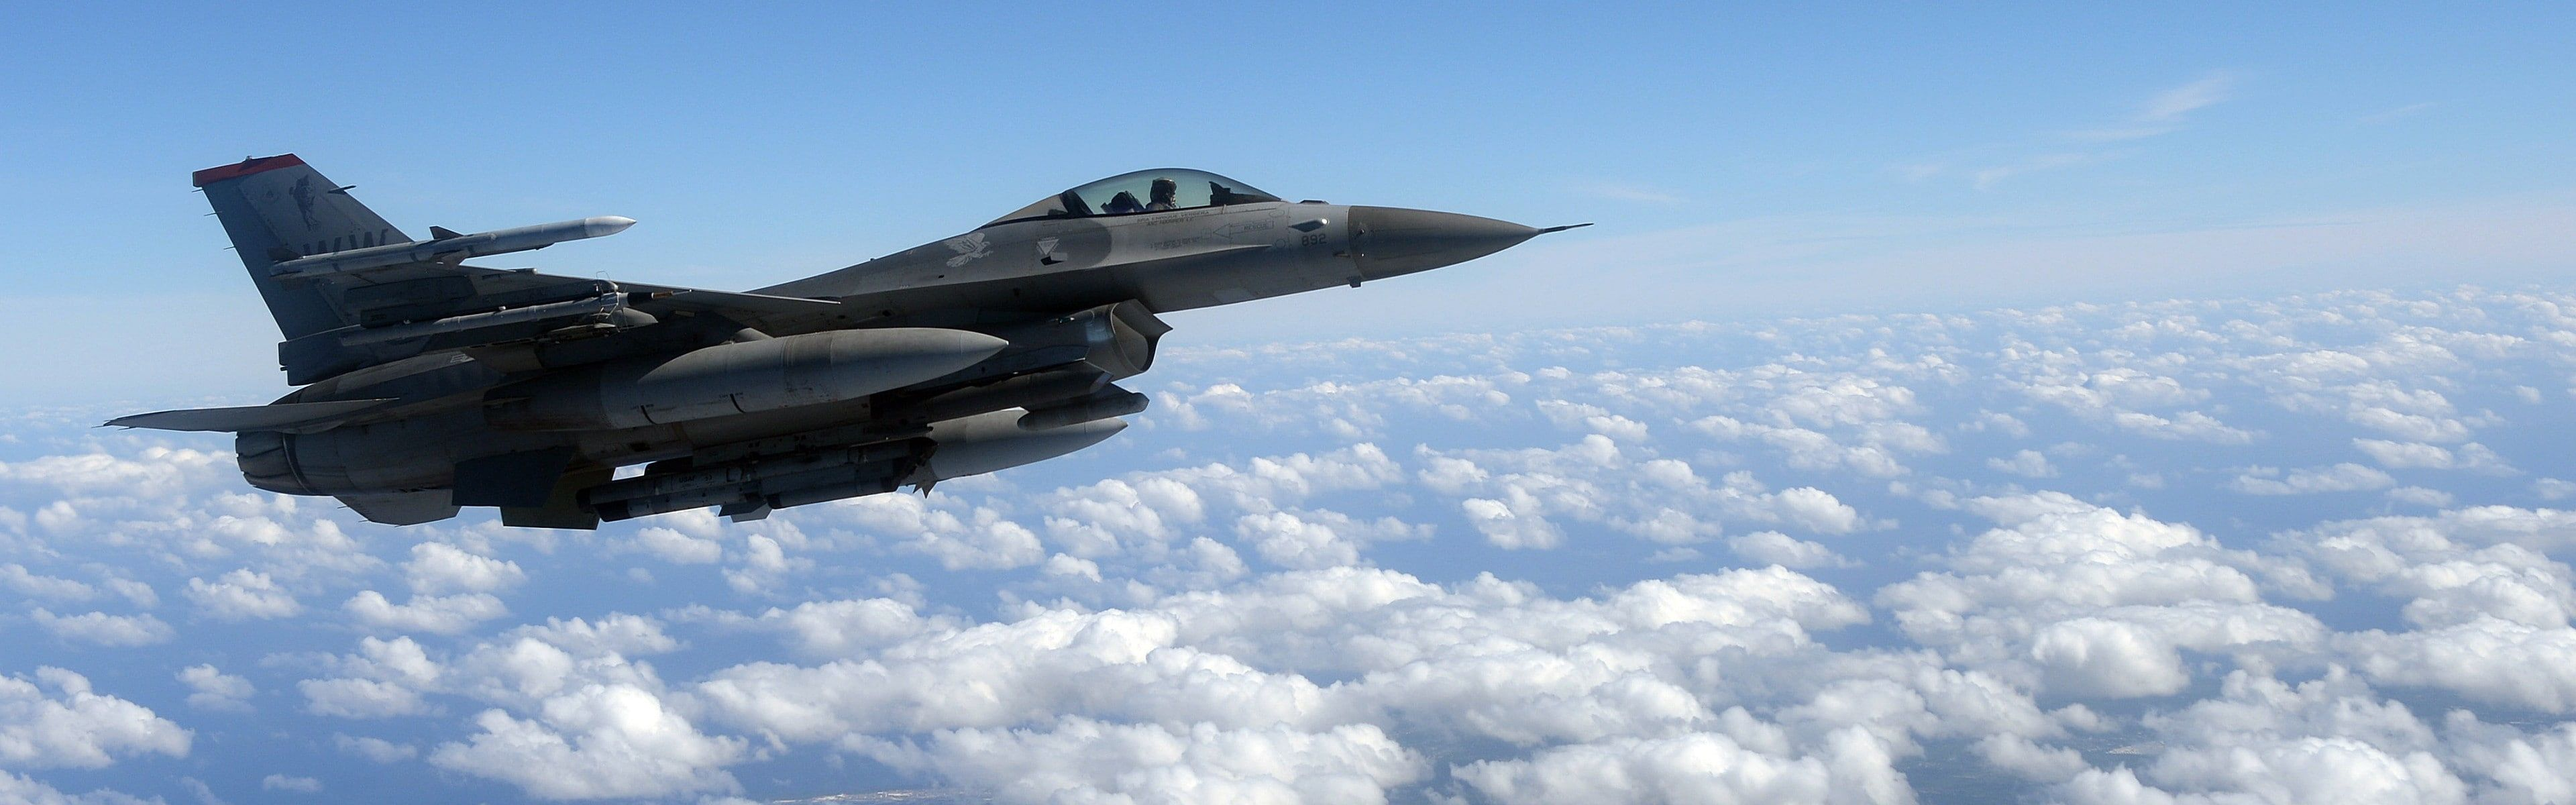 3840x1200 Px Aircraft Clouds Dual Monitors General Dynamics F Military Aircraft Multiple Display Us Air Force 4k Wallpape Hd Wallpaper Fighter Jets Fighter Good aircrafts military hd wallpaper